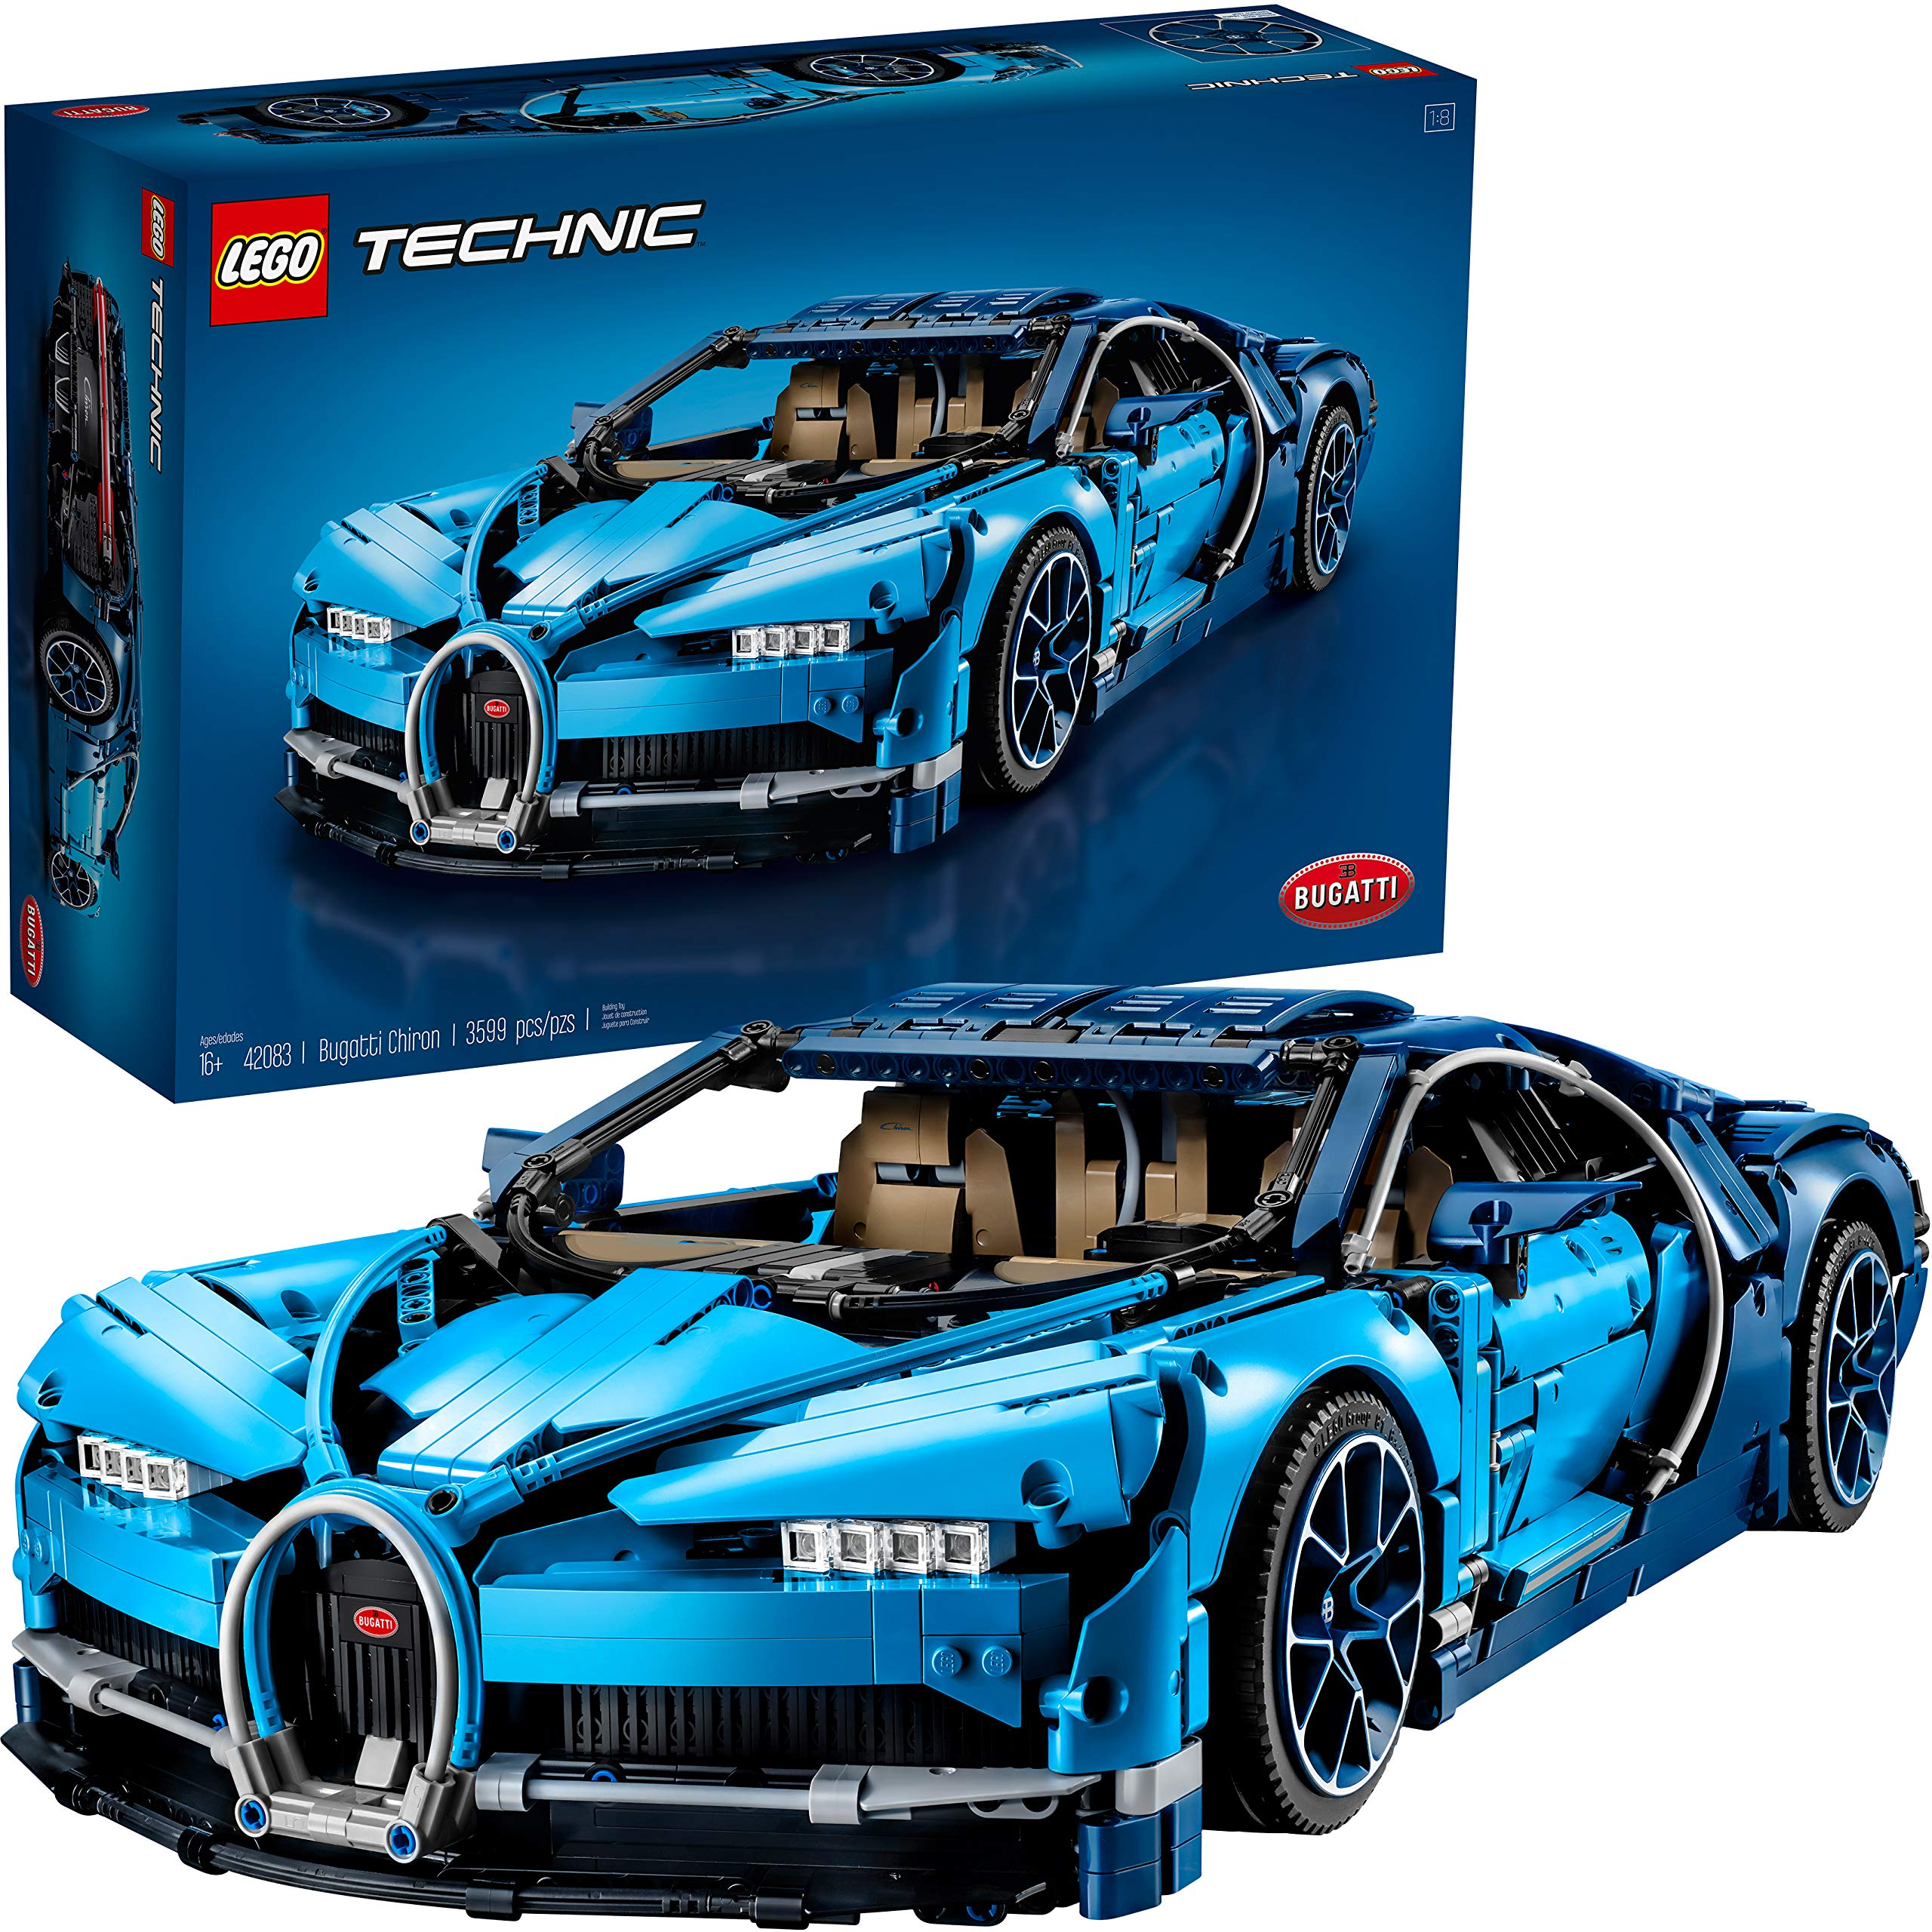 LEGO Technic Building Engineering Collectible